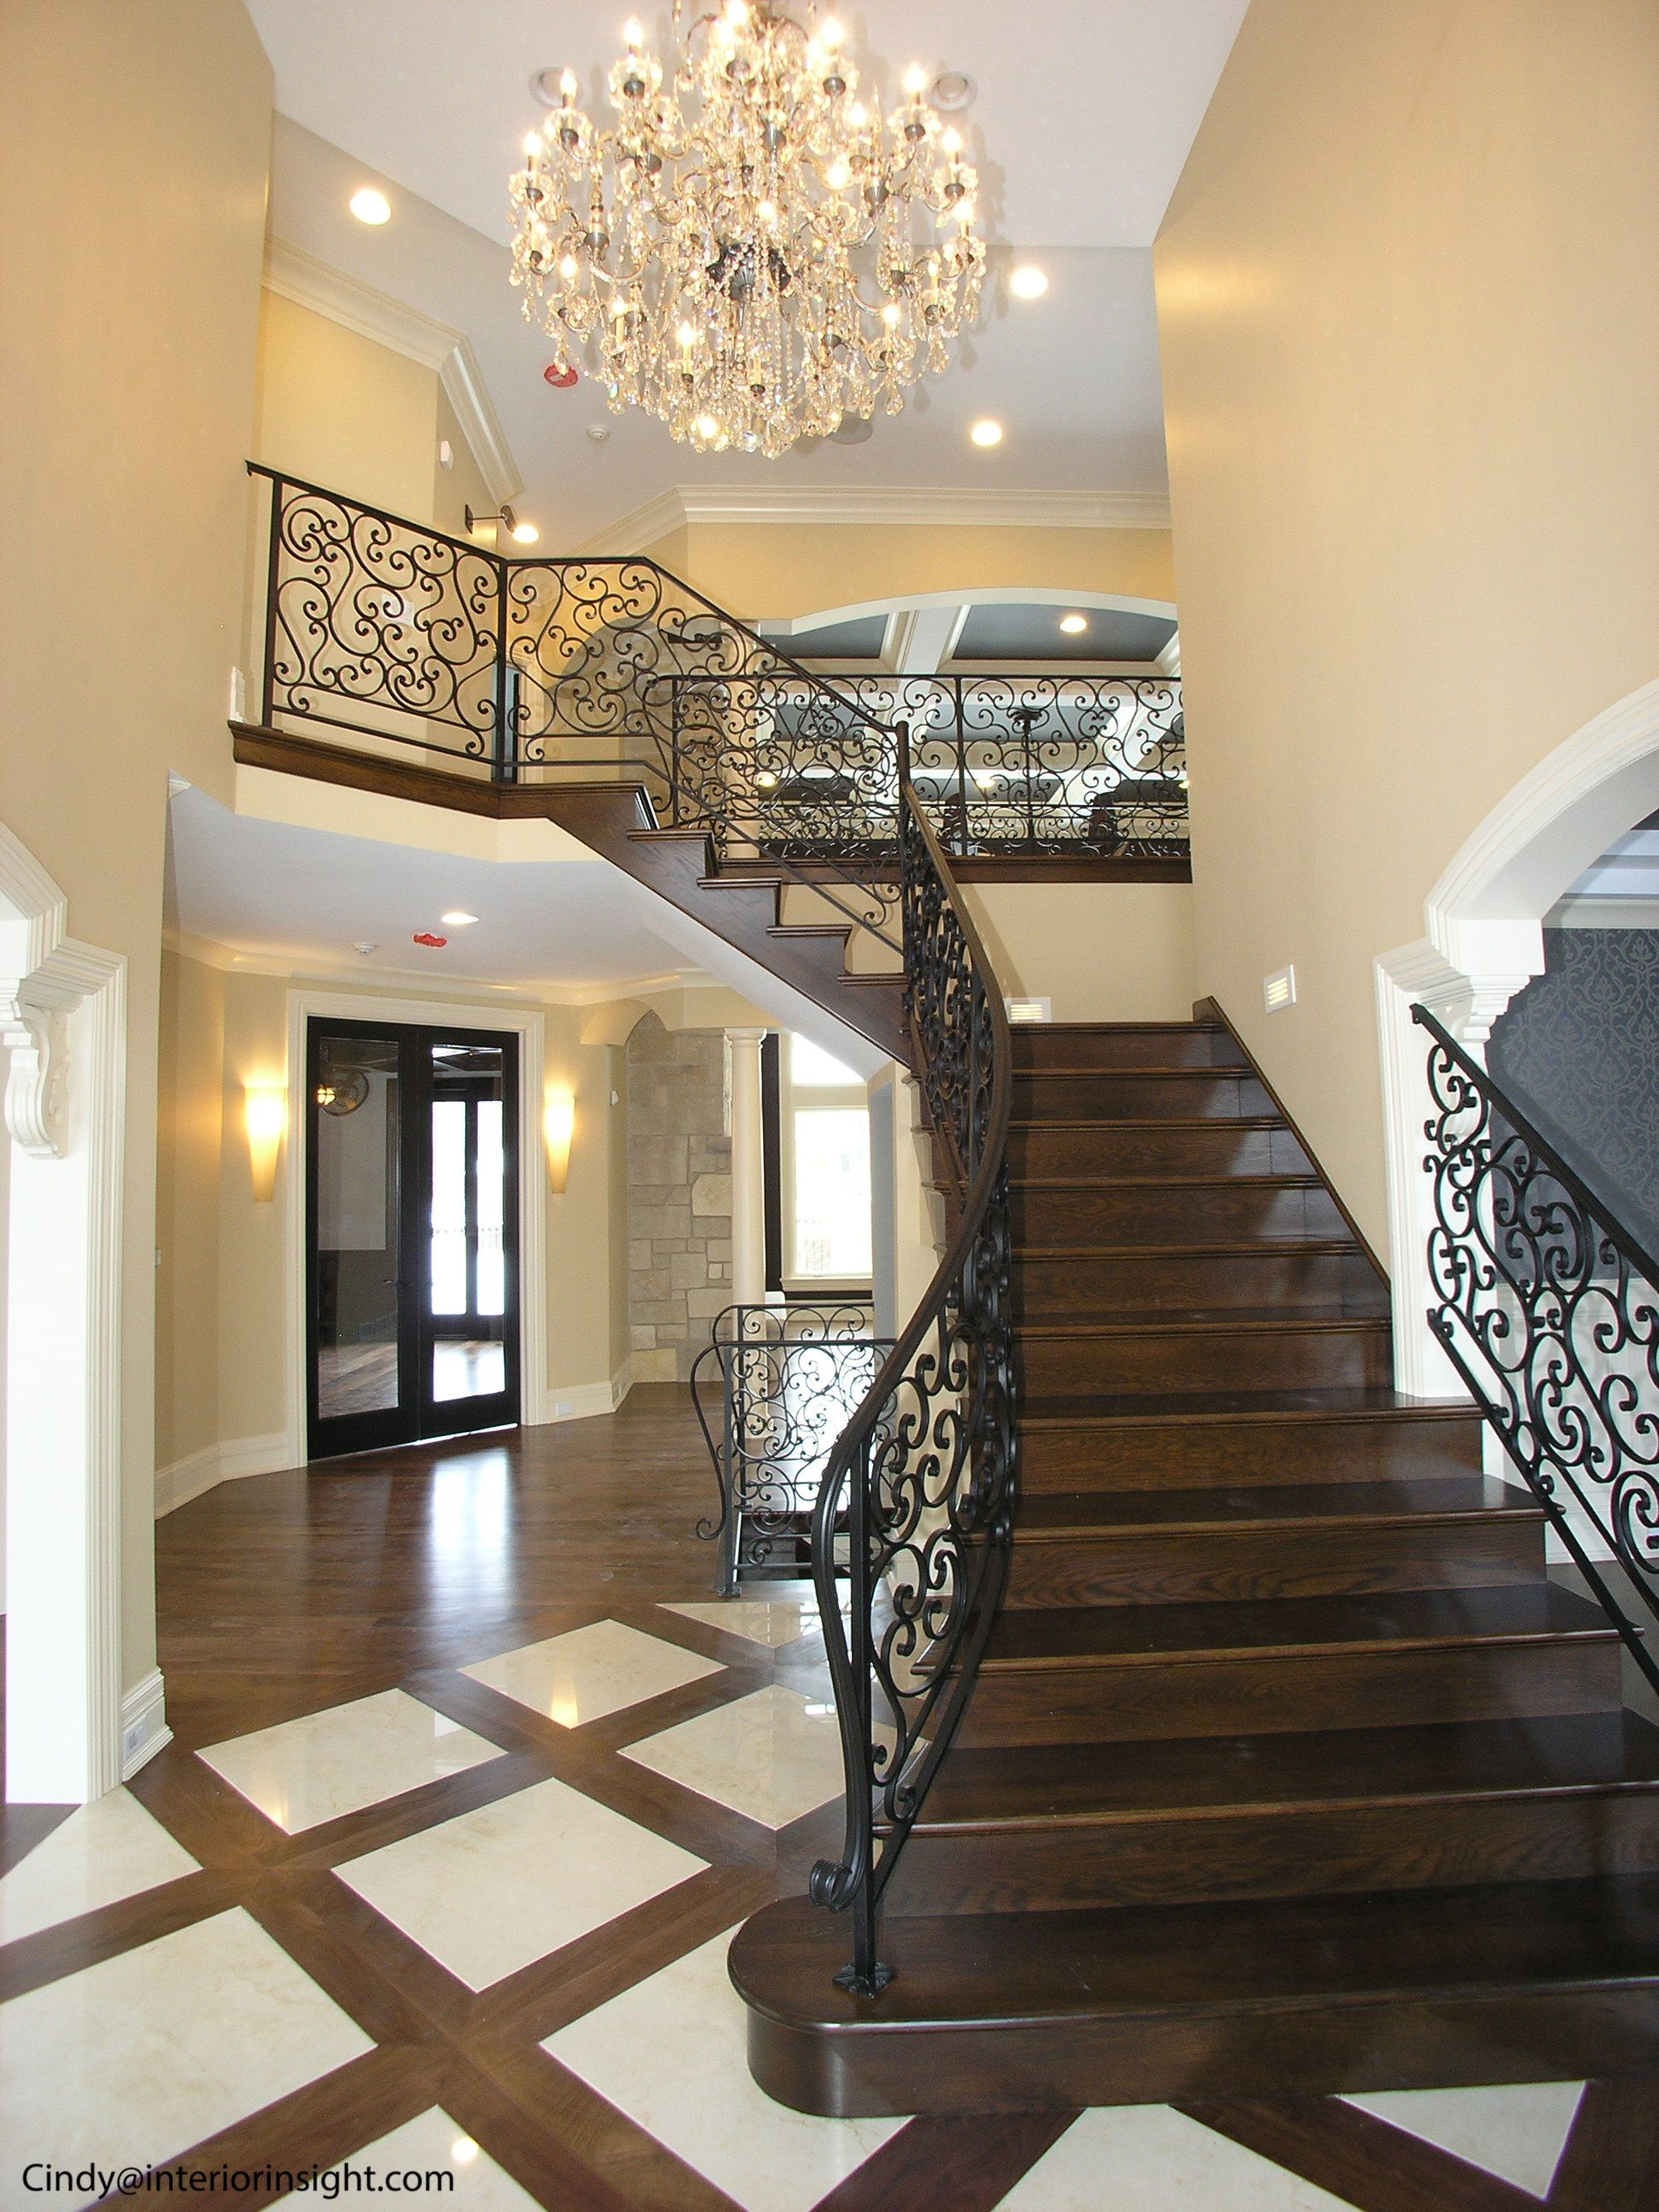 Double Foyer Lighting : Story foyer with curved iron railings and wooden